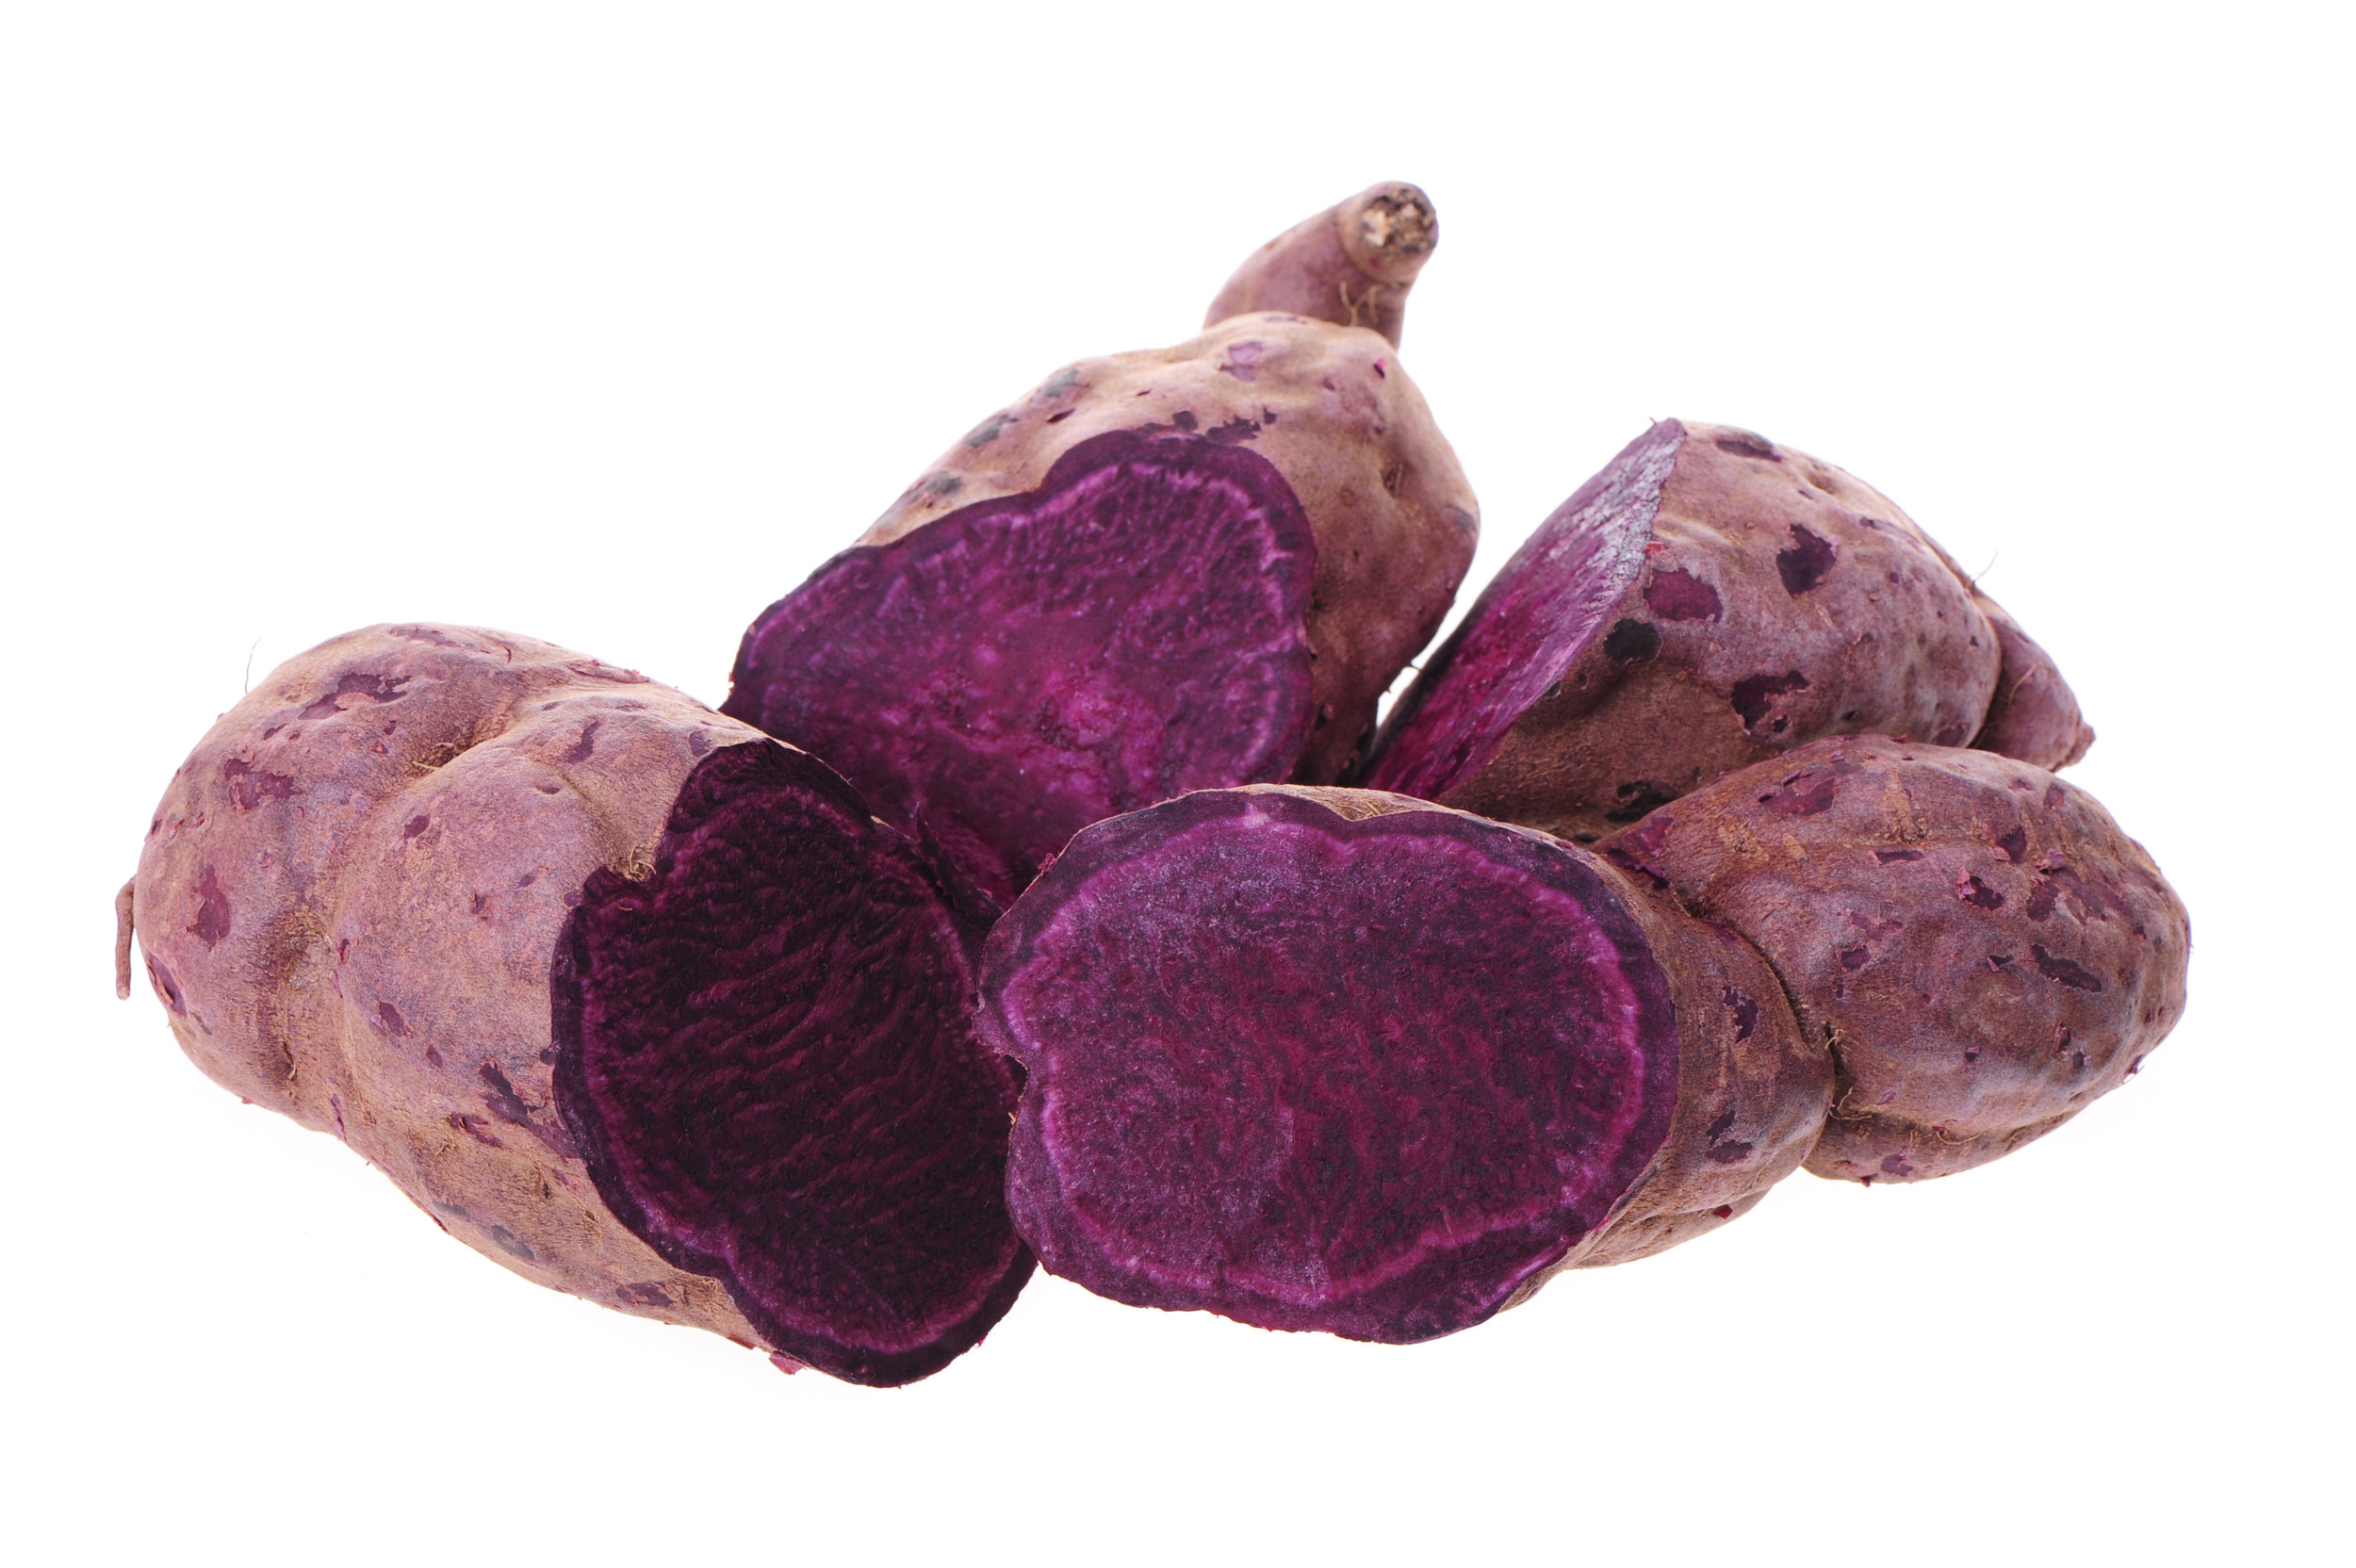 Purple Sweet Potato.jpg